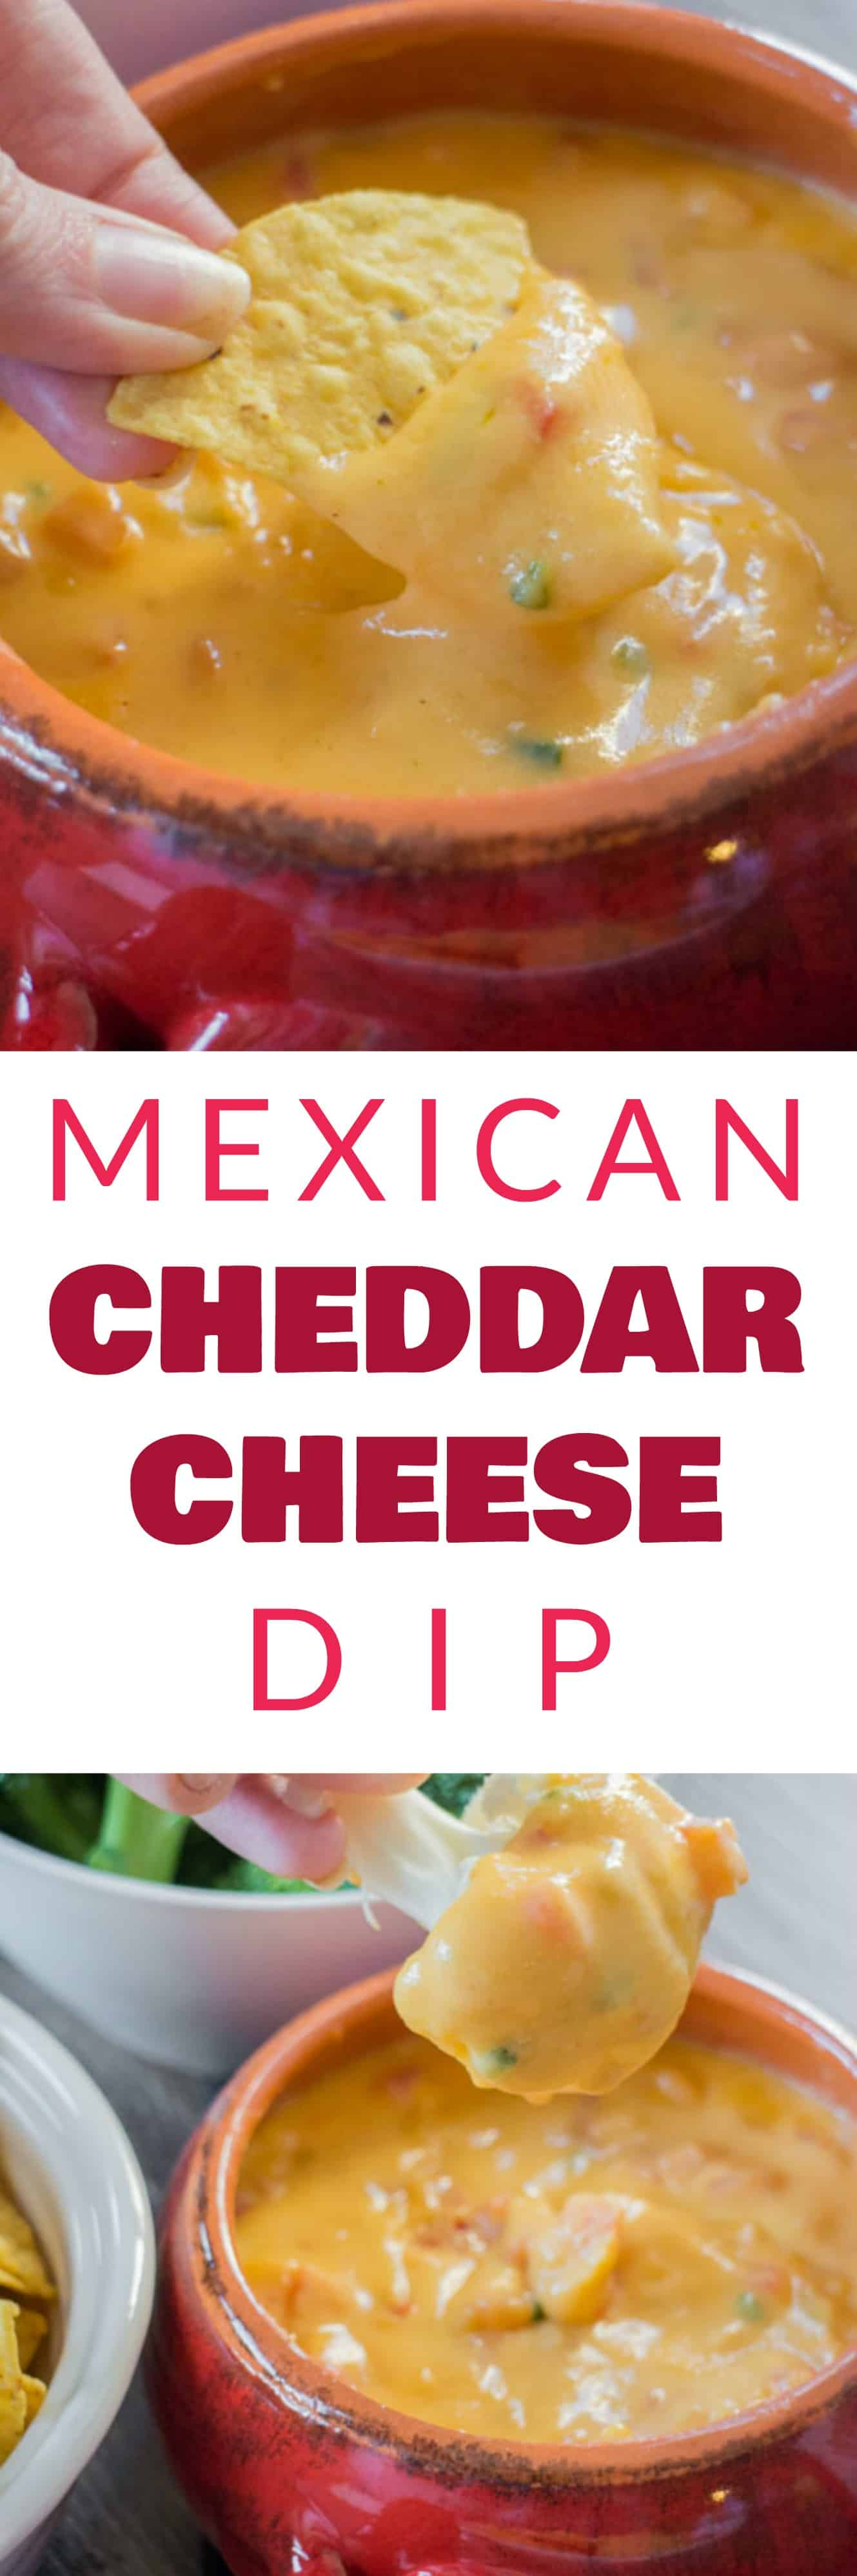 EASY MEXICAN Cheddar Cheese Dip made with 1 bag of shredded cheese, milk and other simple ingredients. This delicious dip can be served with tortilla chips, crackers, vegetables or on top of nachos! It's always the hit of the party!